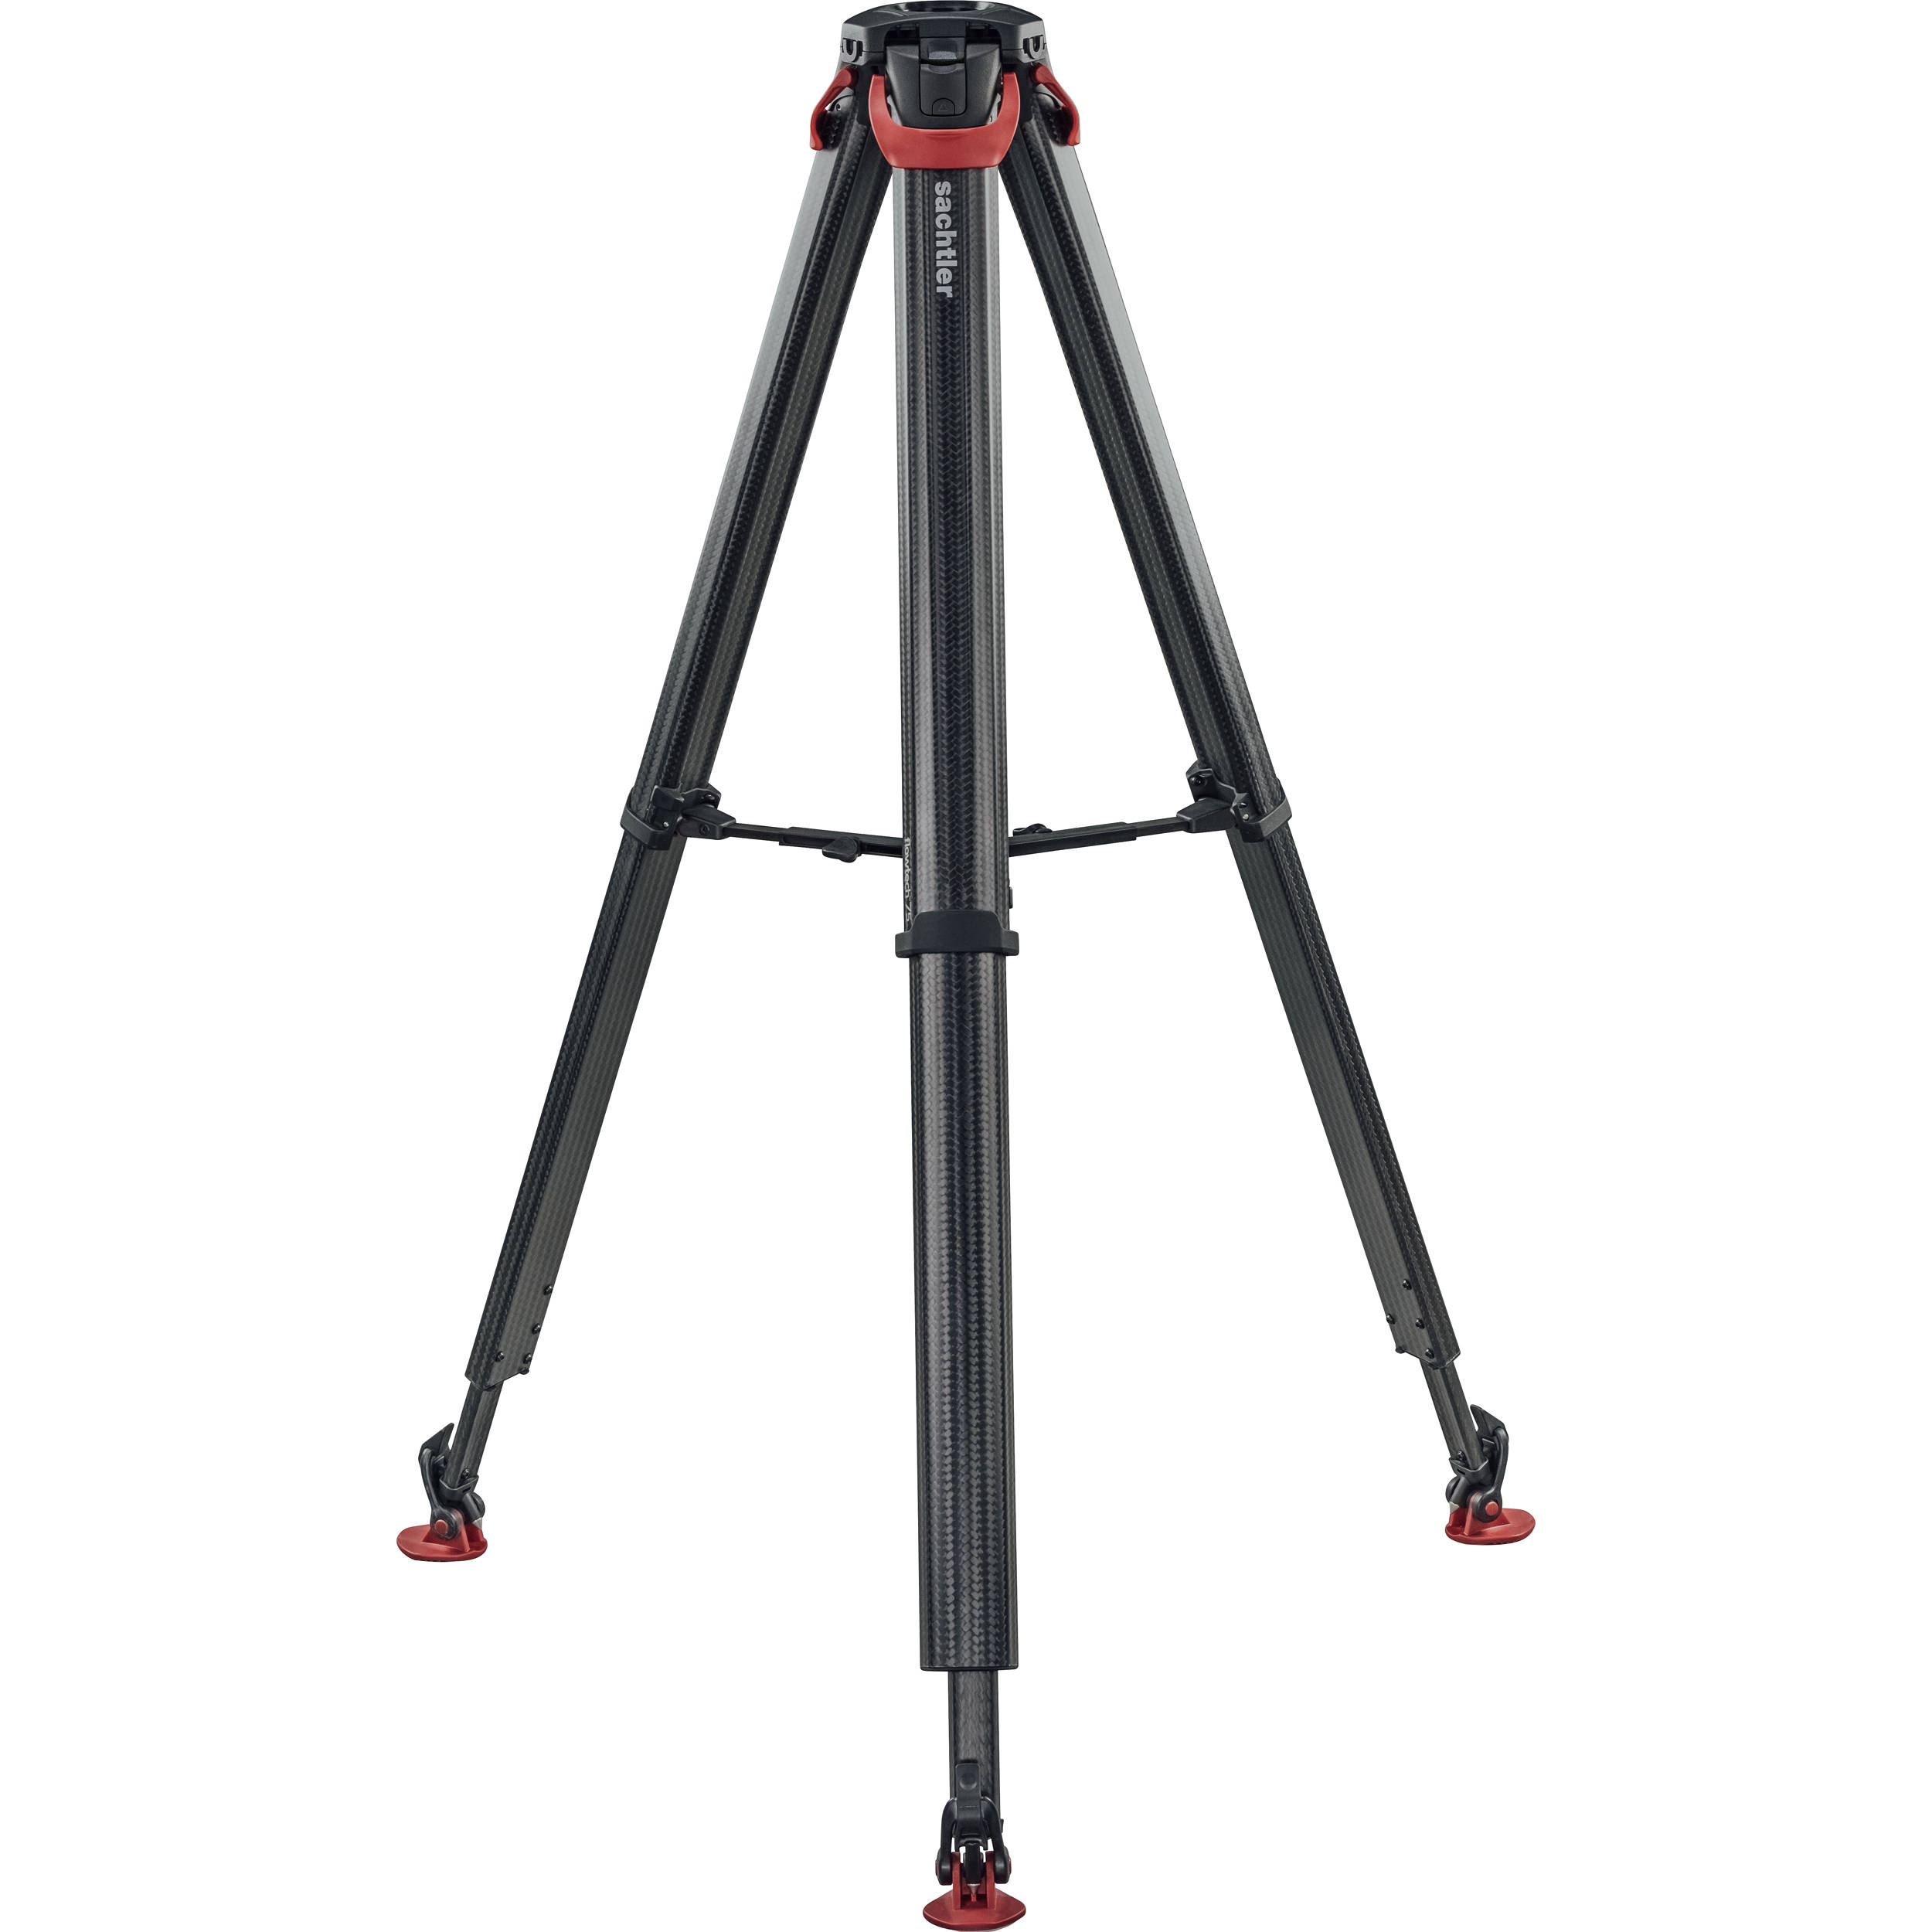 SACHTLER 4585 FLOWTECH 75 CARBON FIBER TRIPOD WITH MID-LEVEL SPREADER AND RUBBER FEET